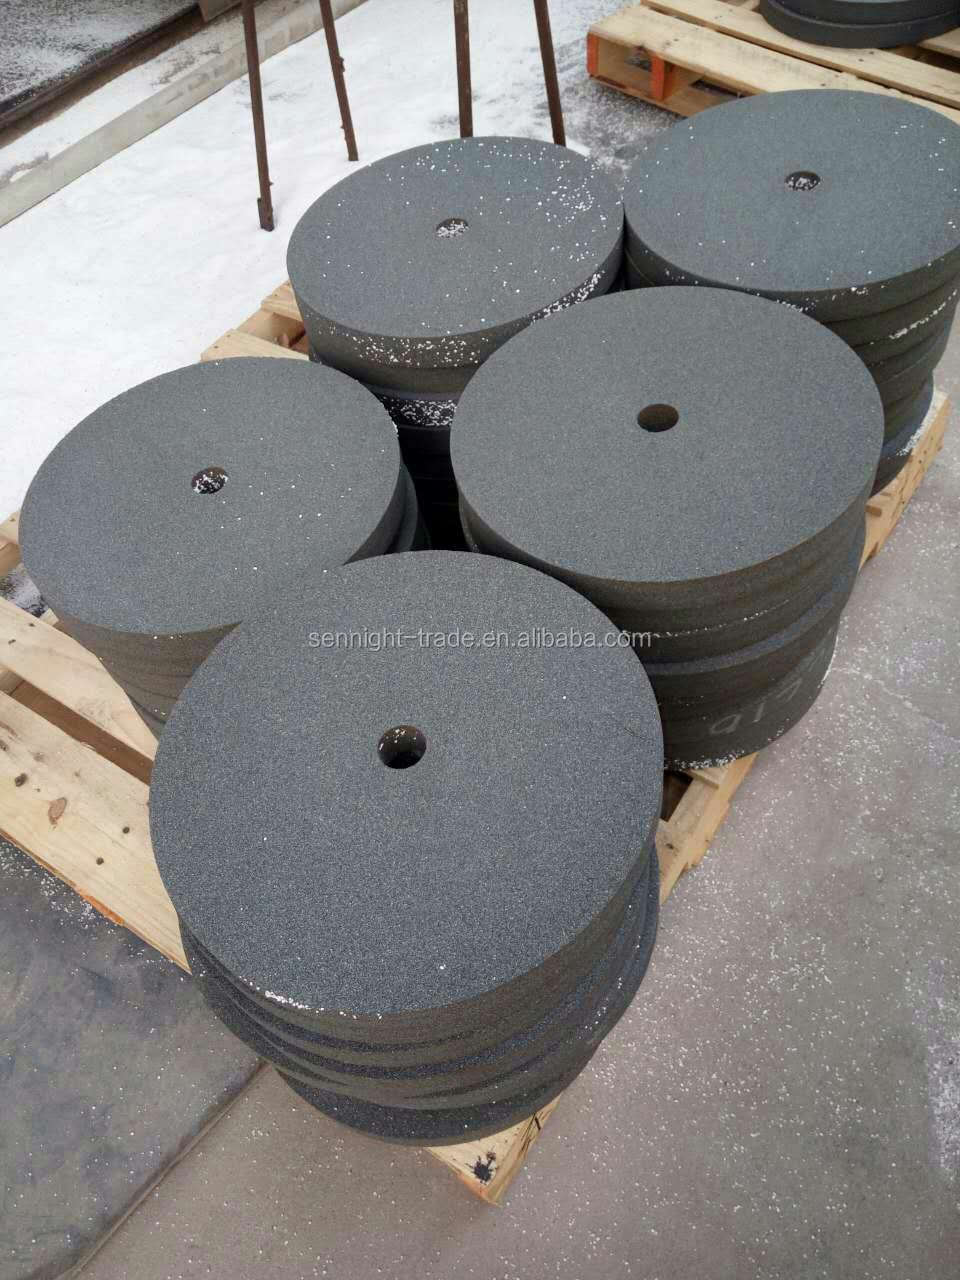 Aluminium Oxide Grinding Wheel for Surgical Instrument